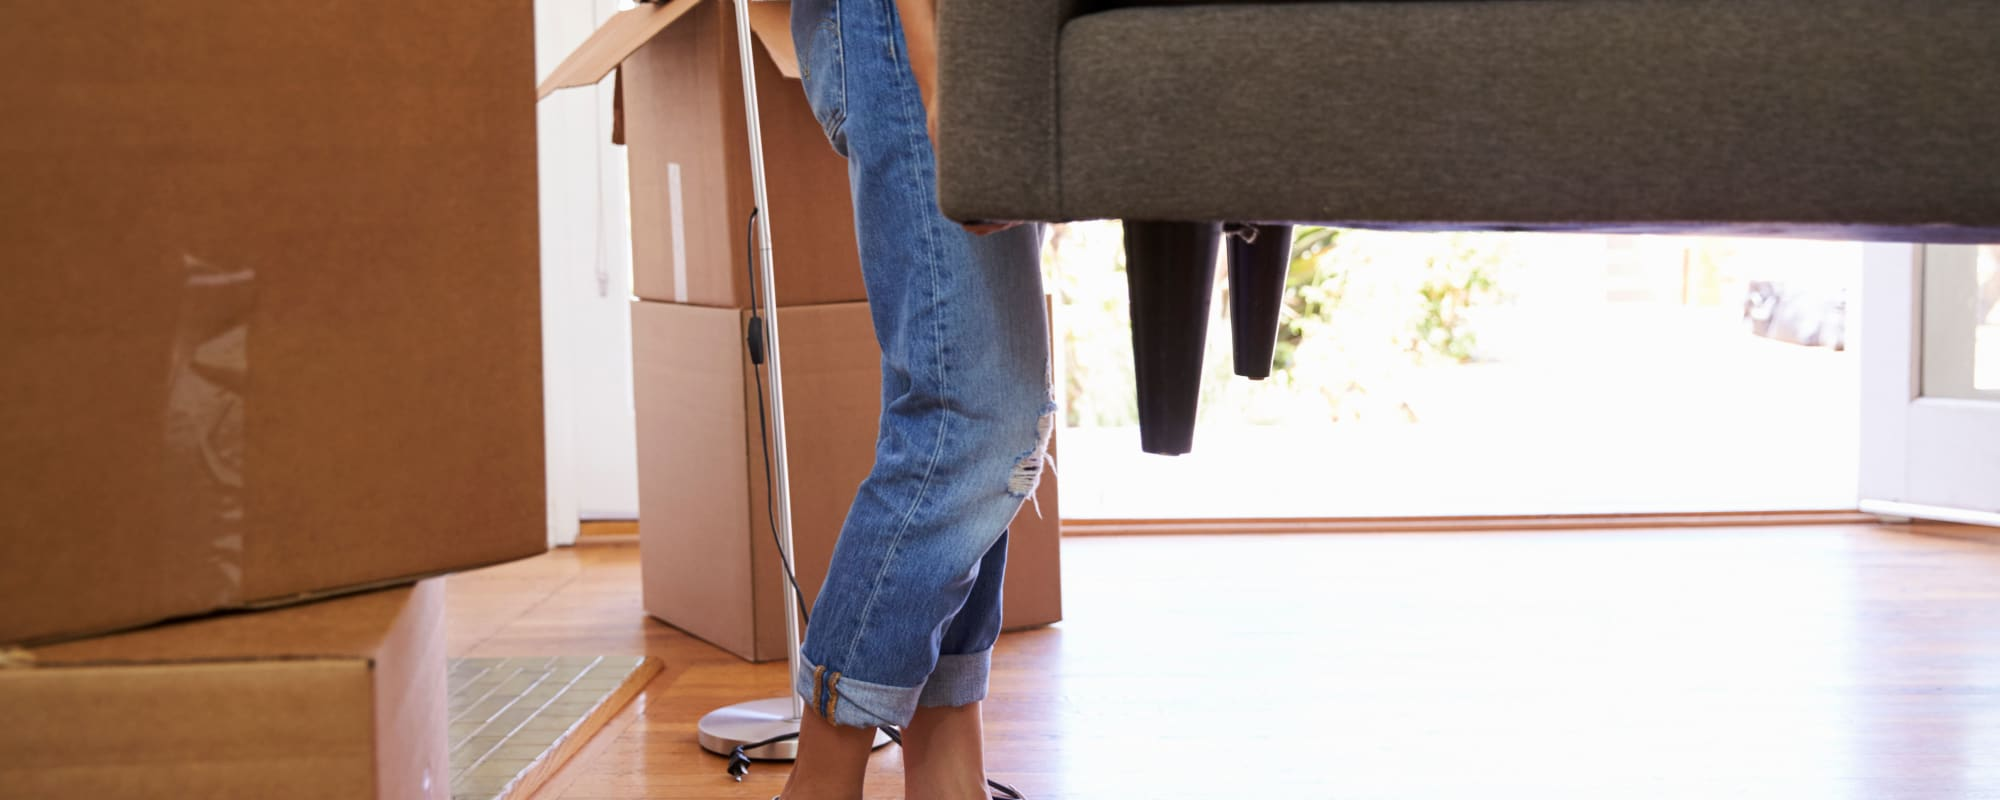 Woman moving sofa to A3 Storage Centers in Midland, Texas